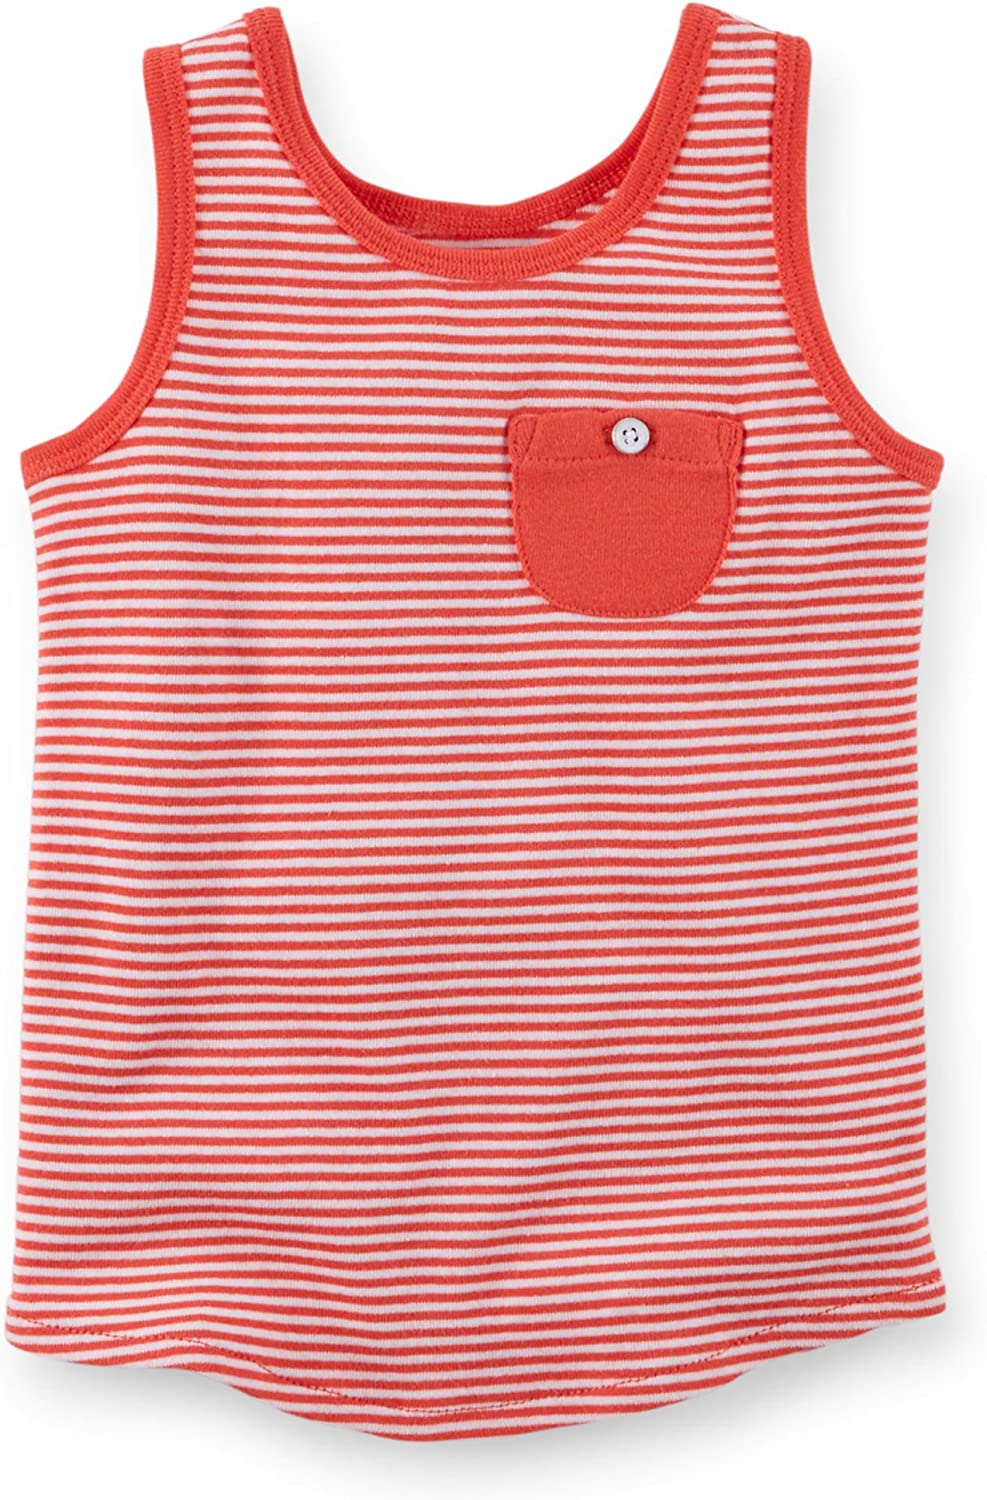 Carters Girls Red /& White Striped Tank Top